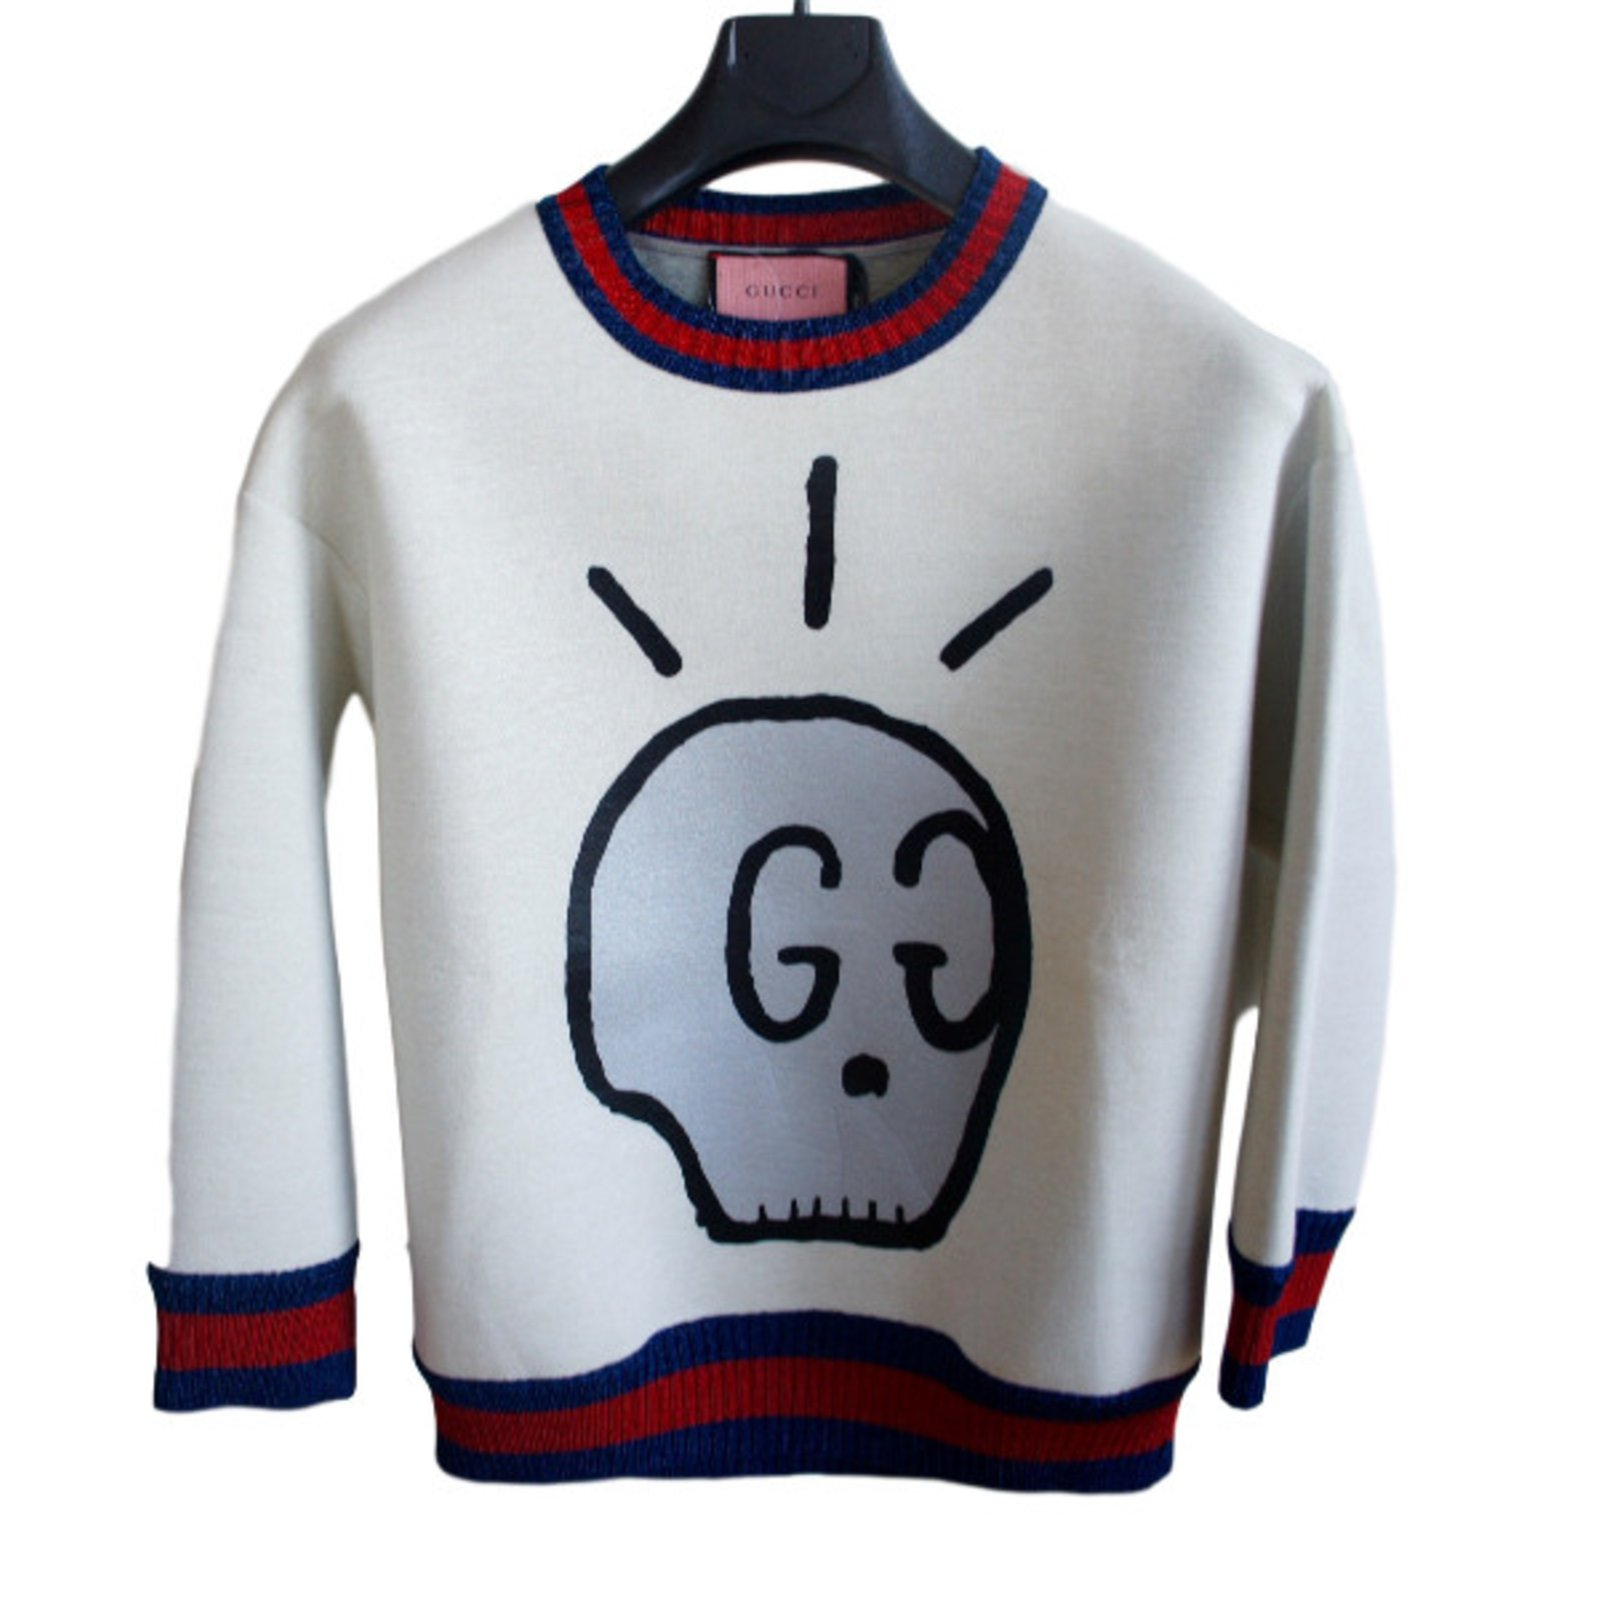 6c7c40f0f Gucci Gucci Ghost Sold out Knitwear Cotton Multiple colors ref.30616 ...